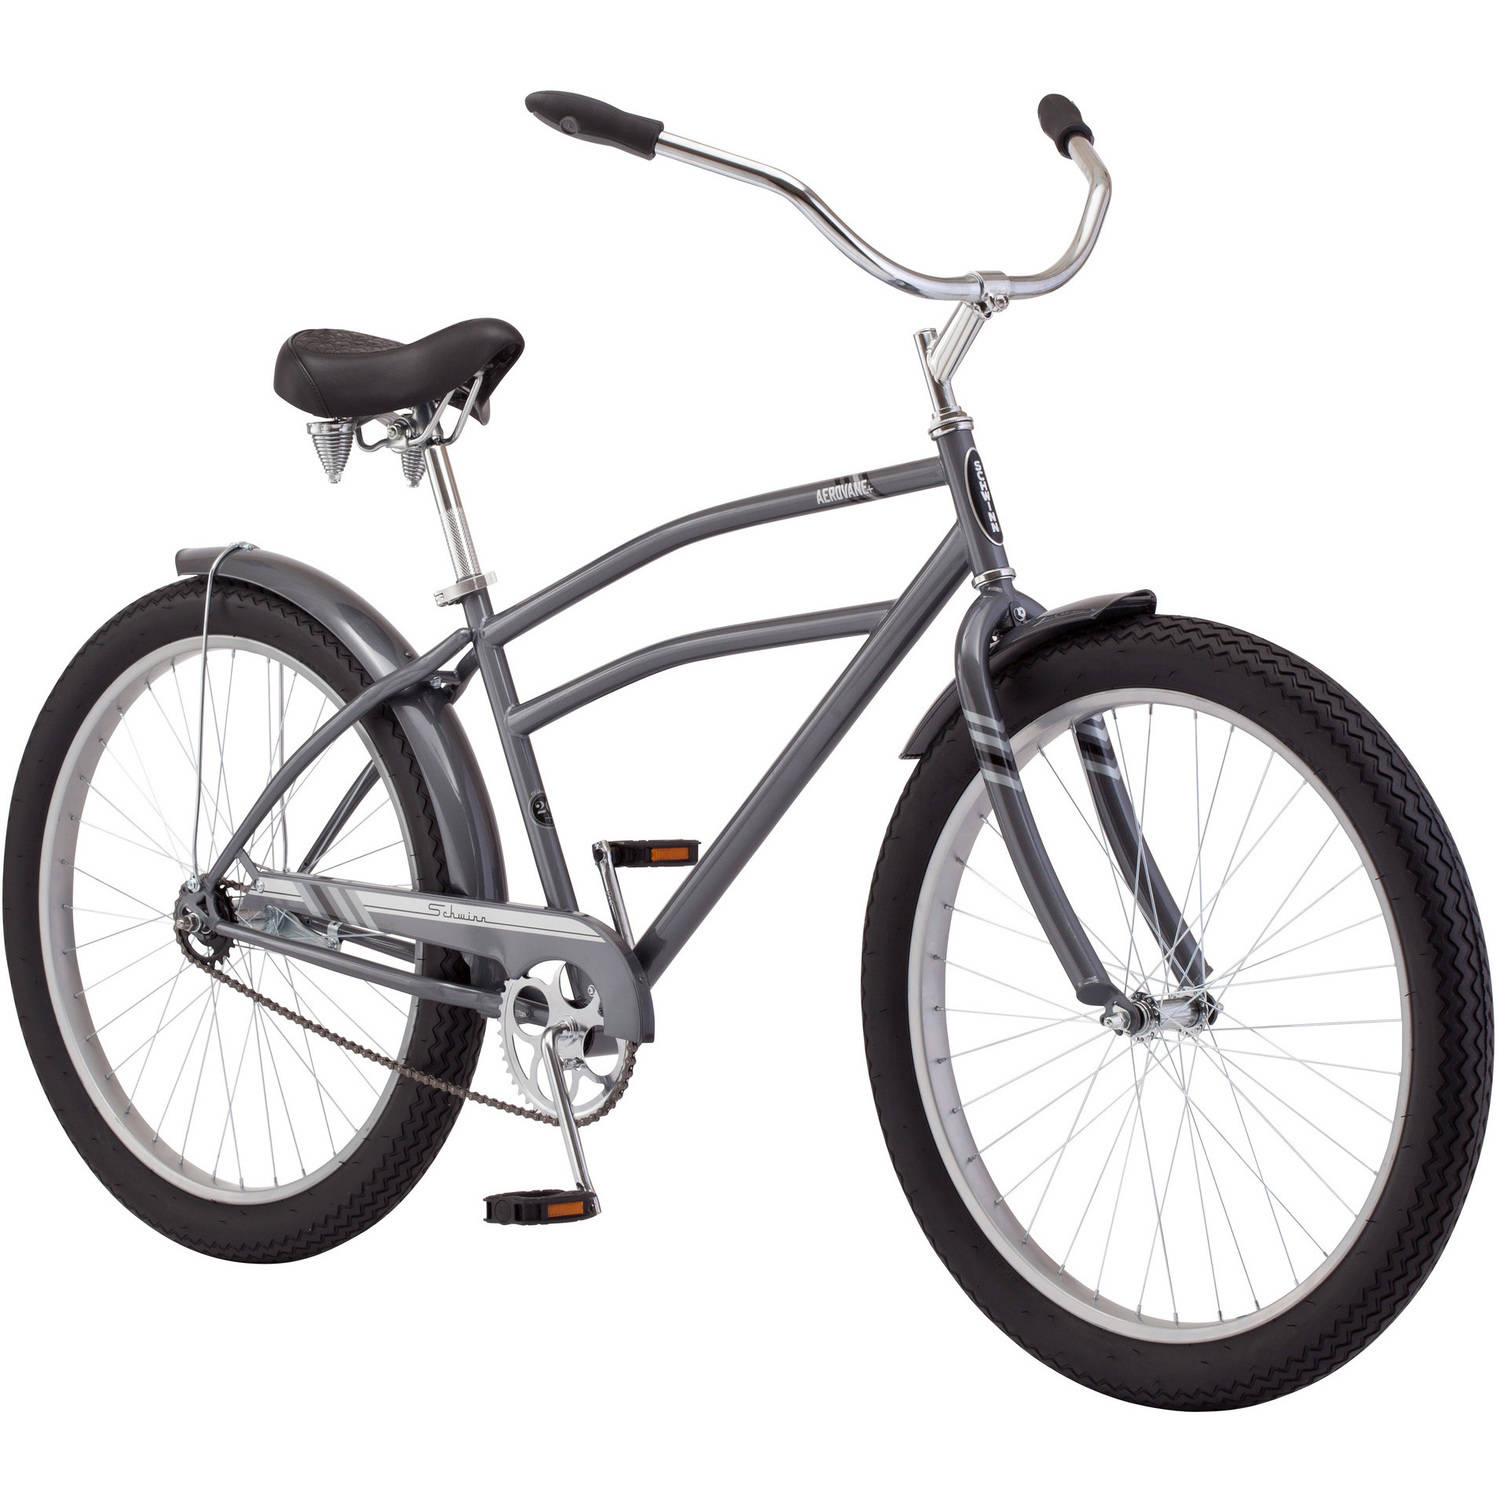 "26.5""+ Schwinn Aerovane Men's Cruiser Bike, Gray"